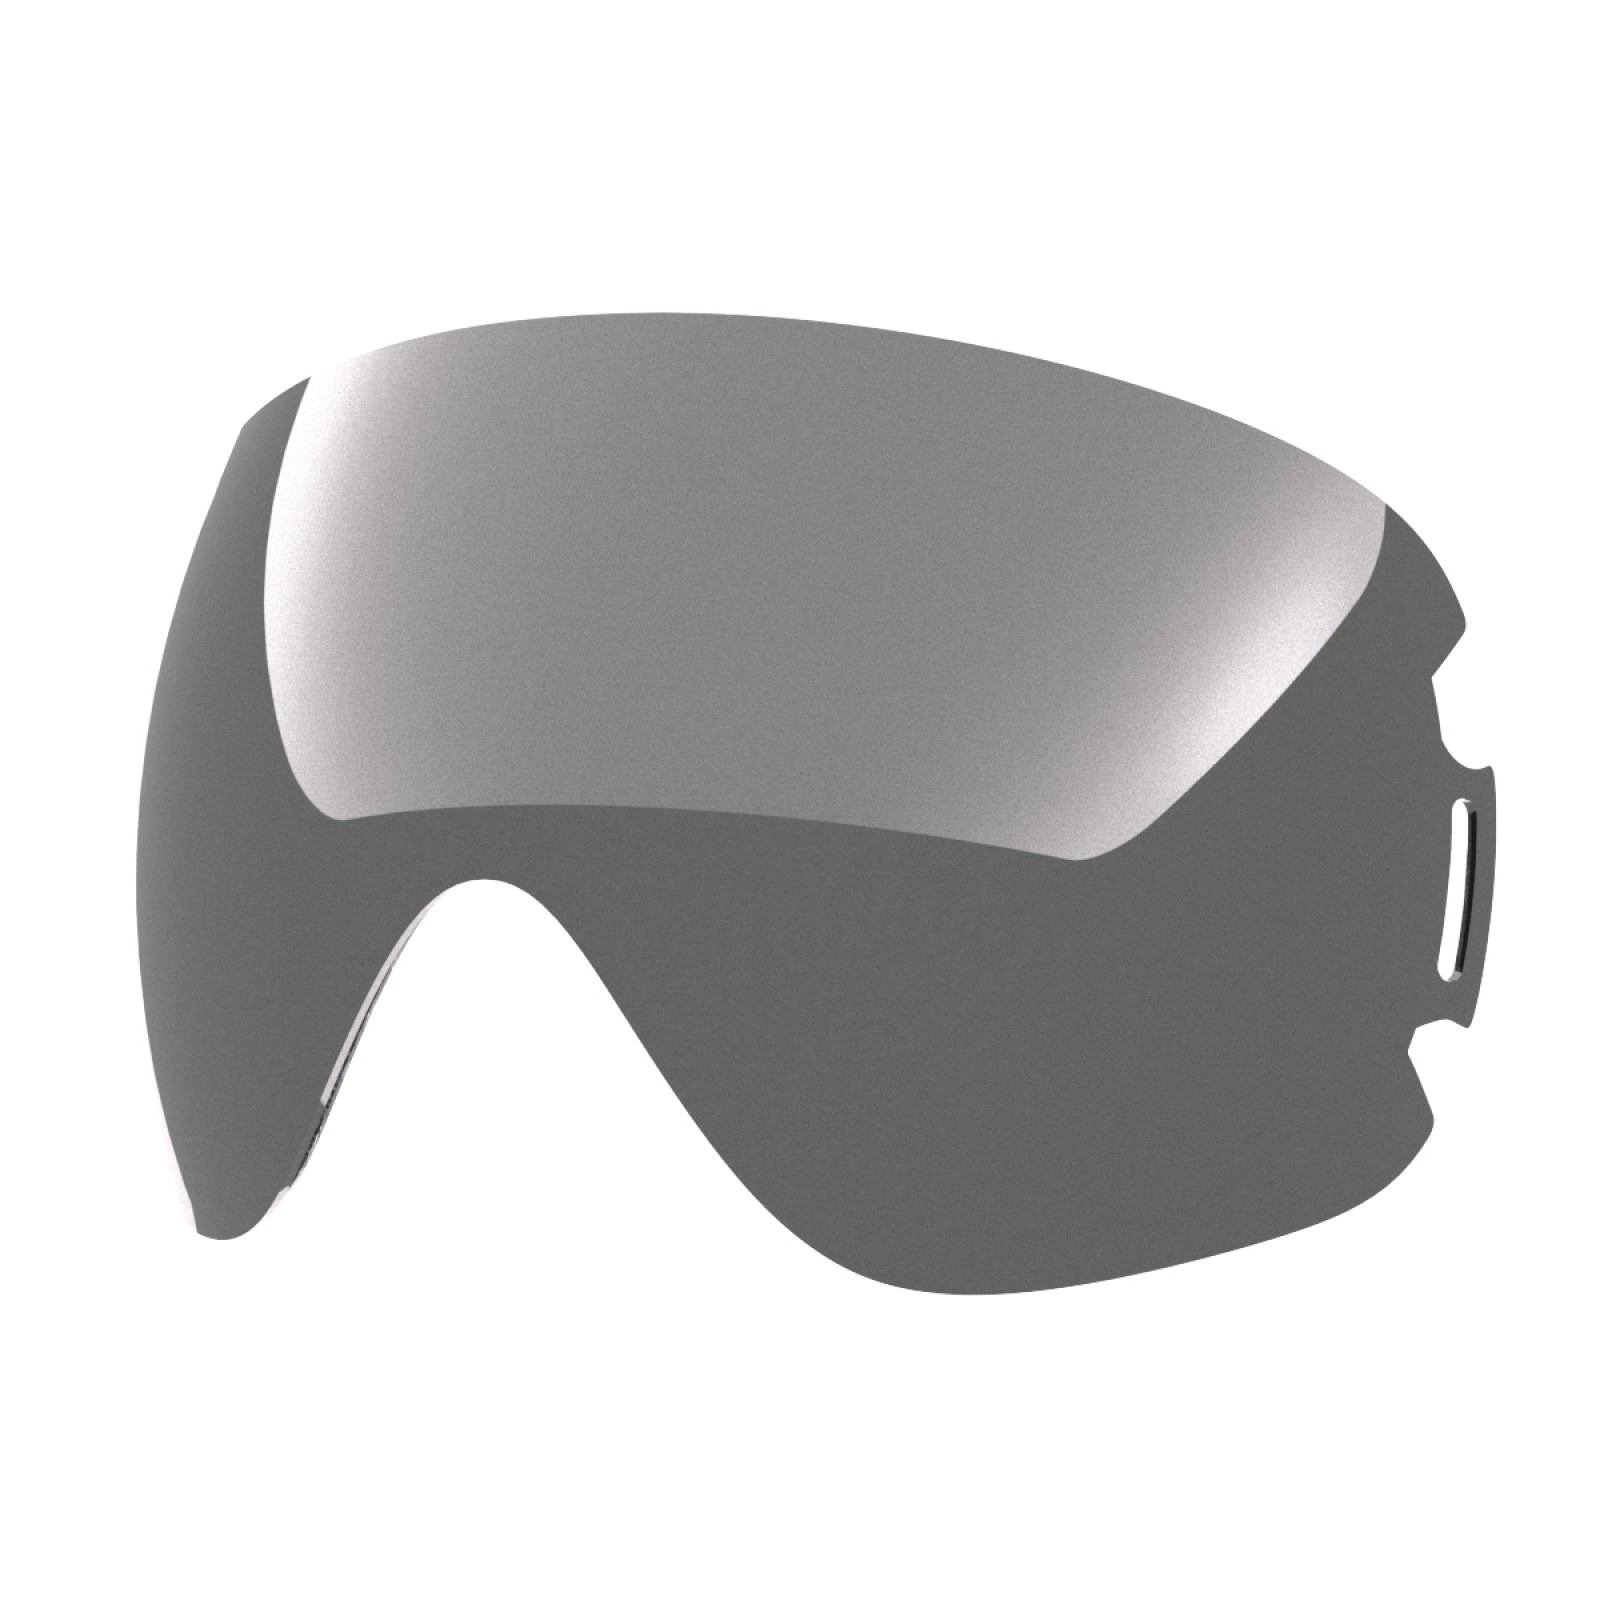 SILVER lens for  Open goggle